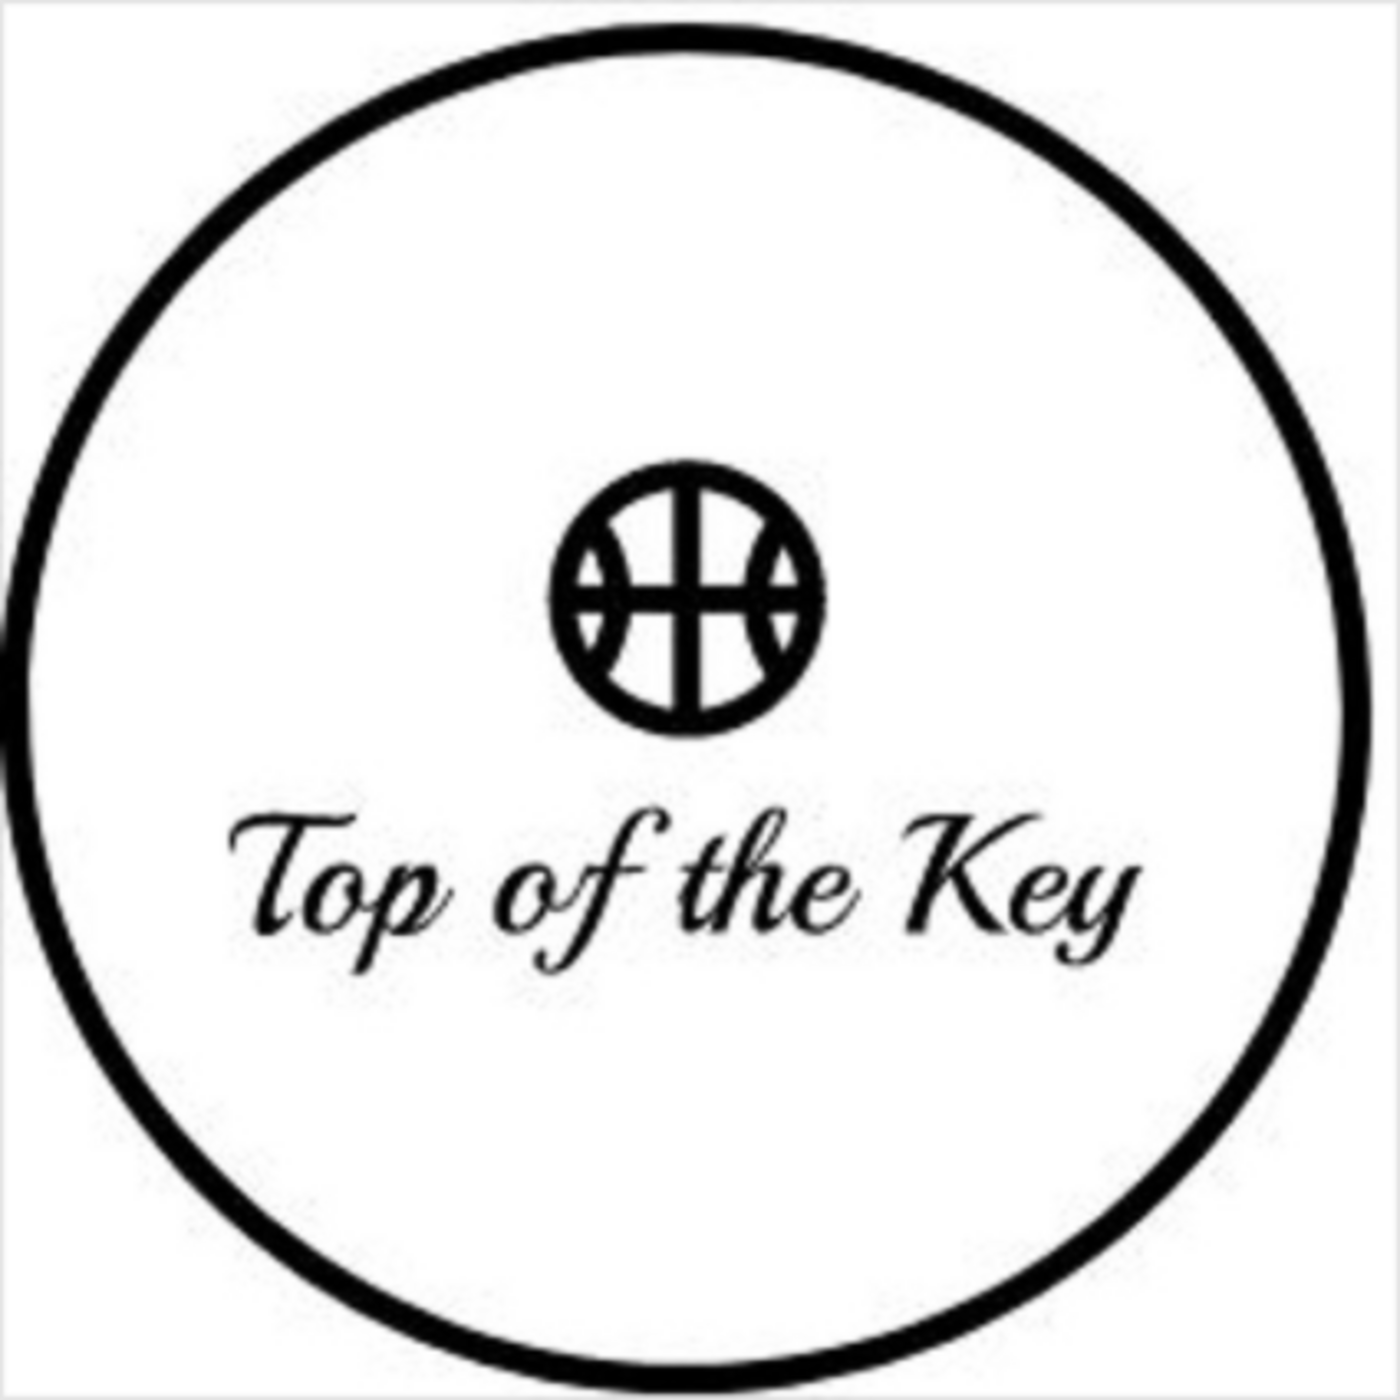 1400x1400 Top Of The Key Podcast Episode Nothing Gold Can Stay